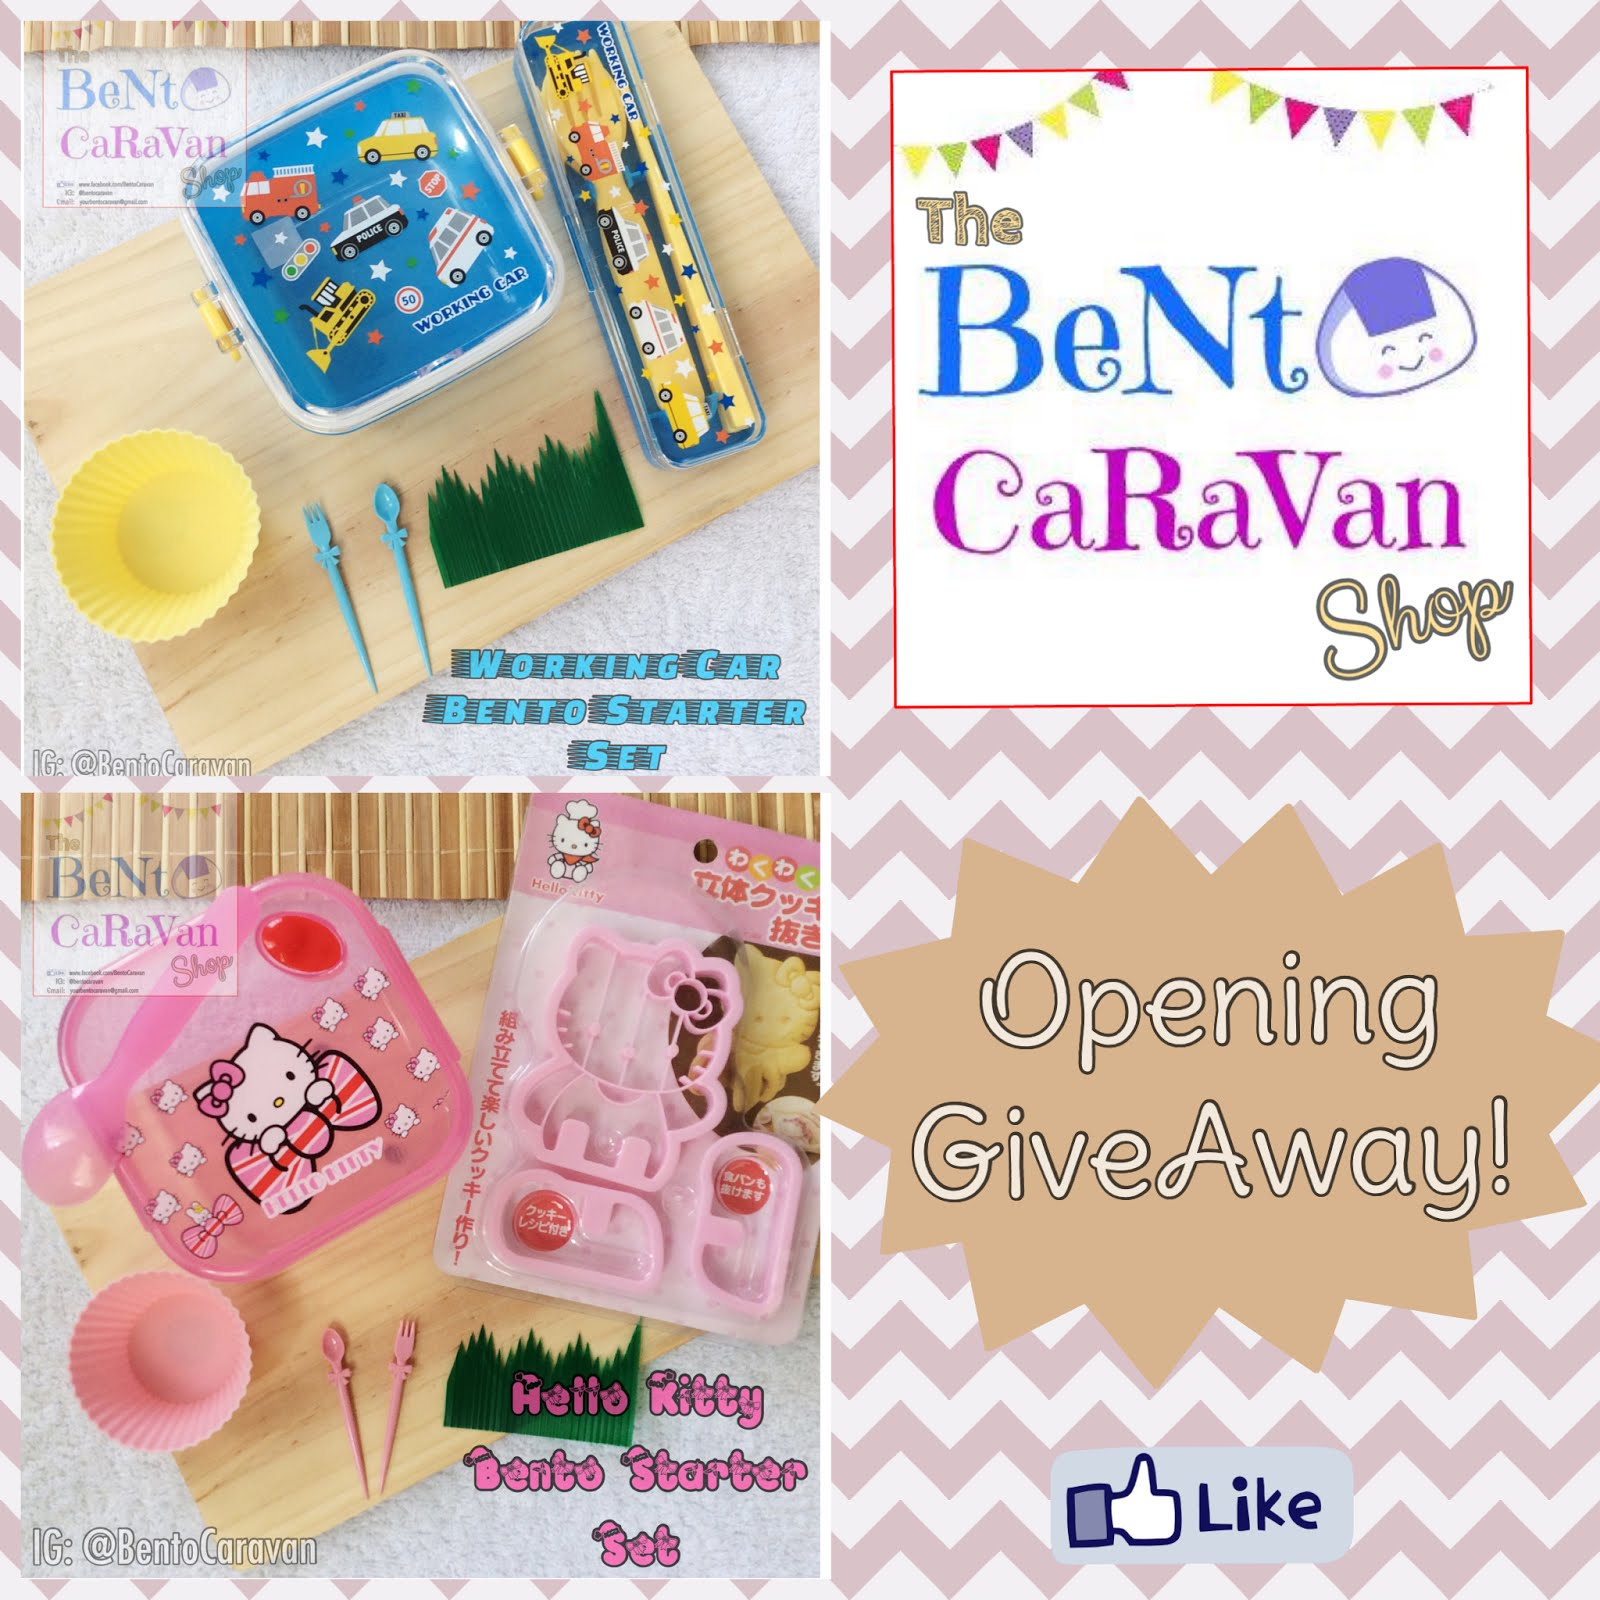 Join The Bento CaraVan Shop Opening GiveAway!